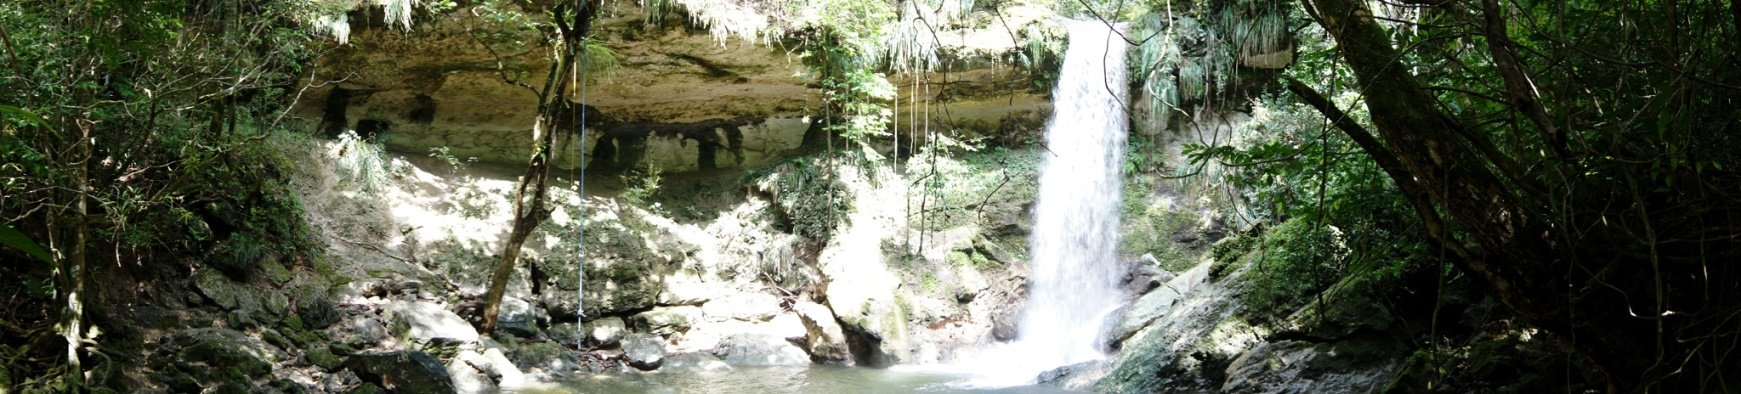 Gozalandia Waterfall Panoramic I